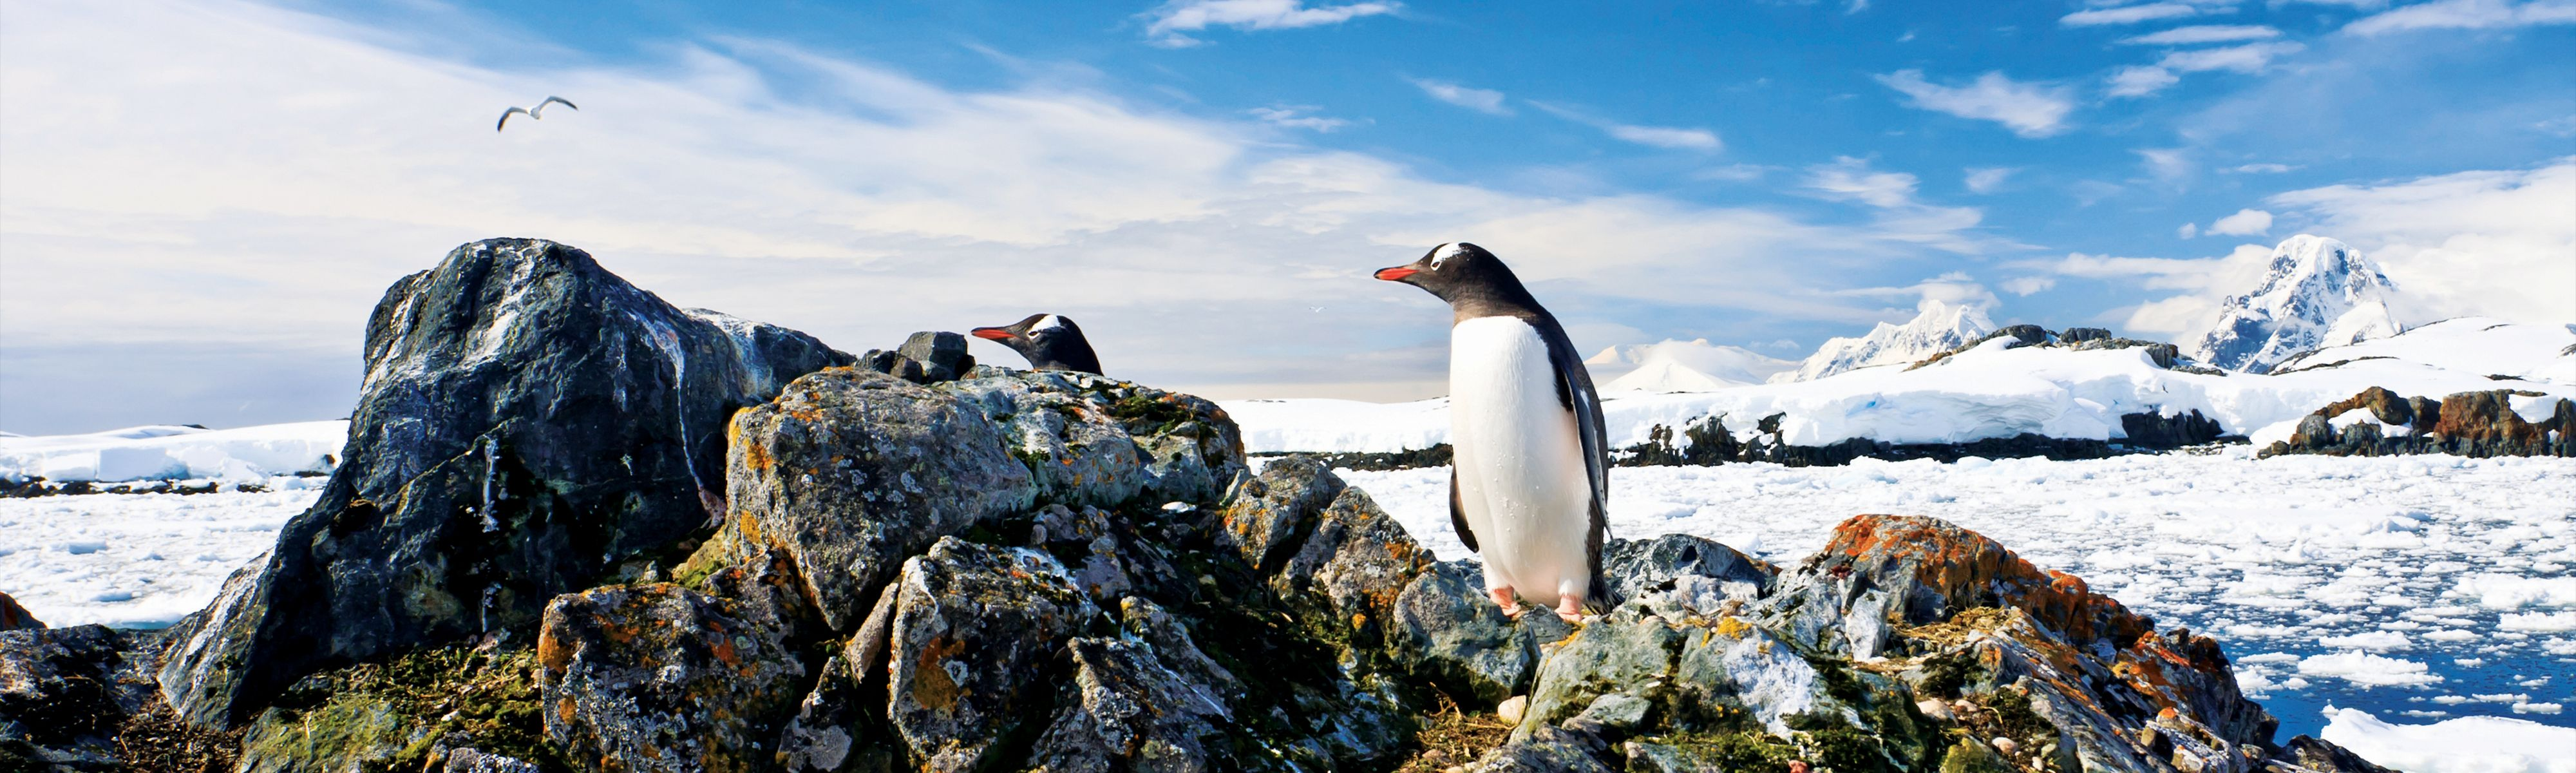 gentoo penguin standing on rock in antarctica